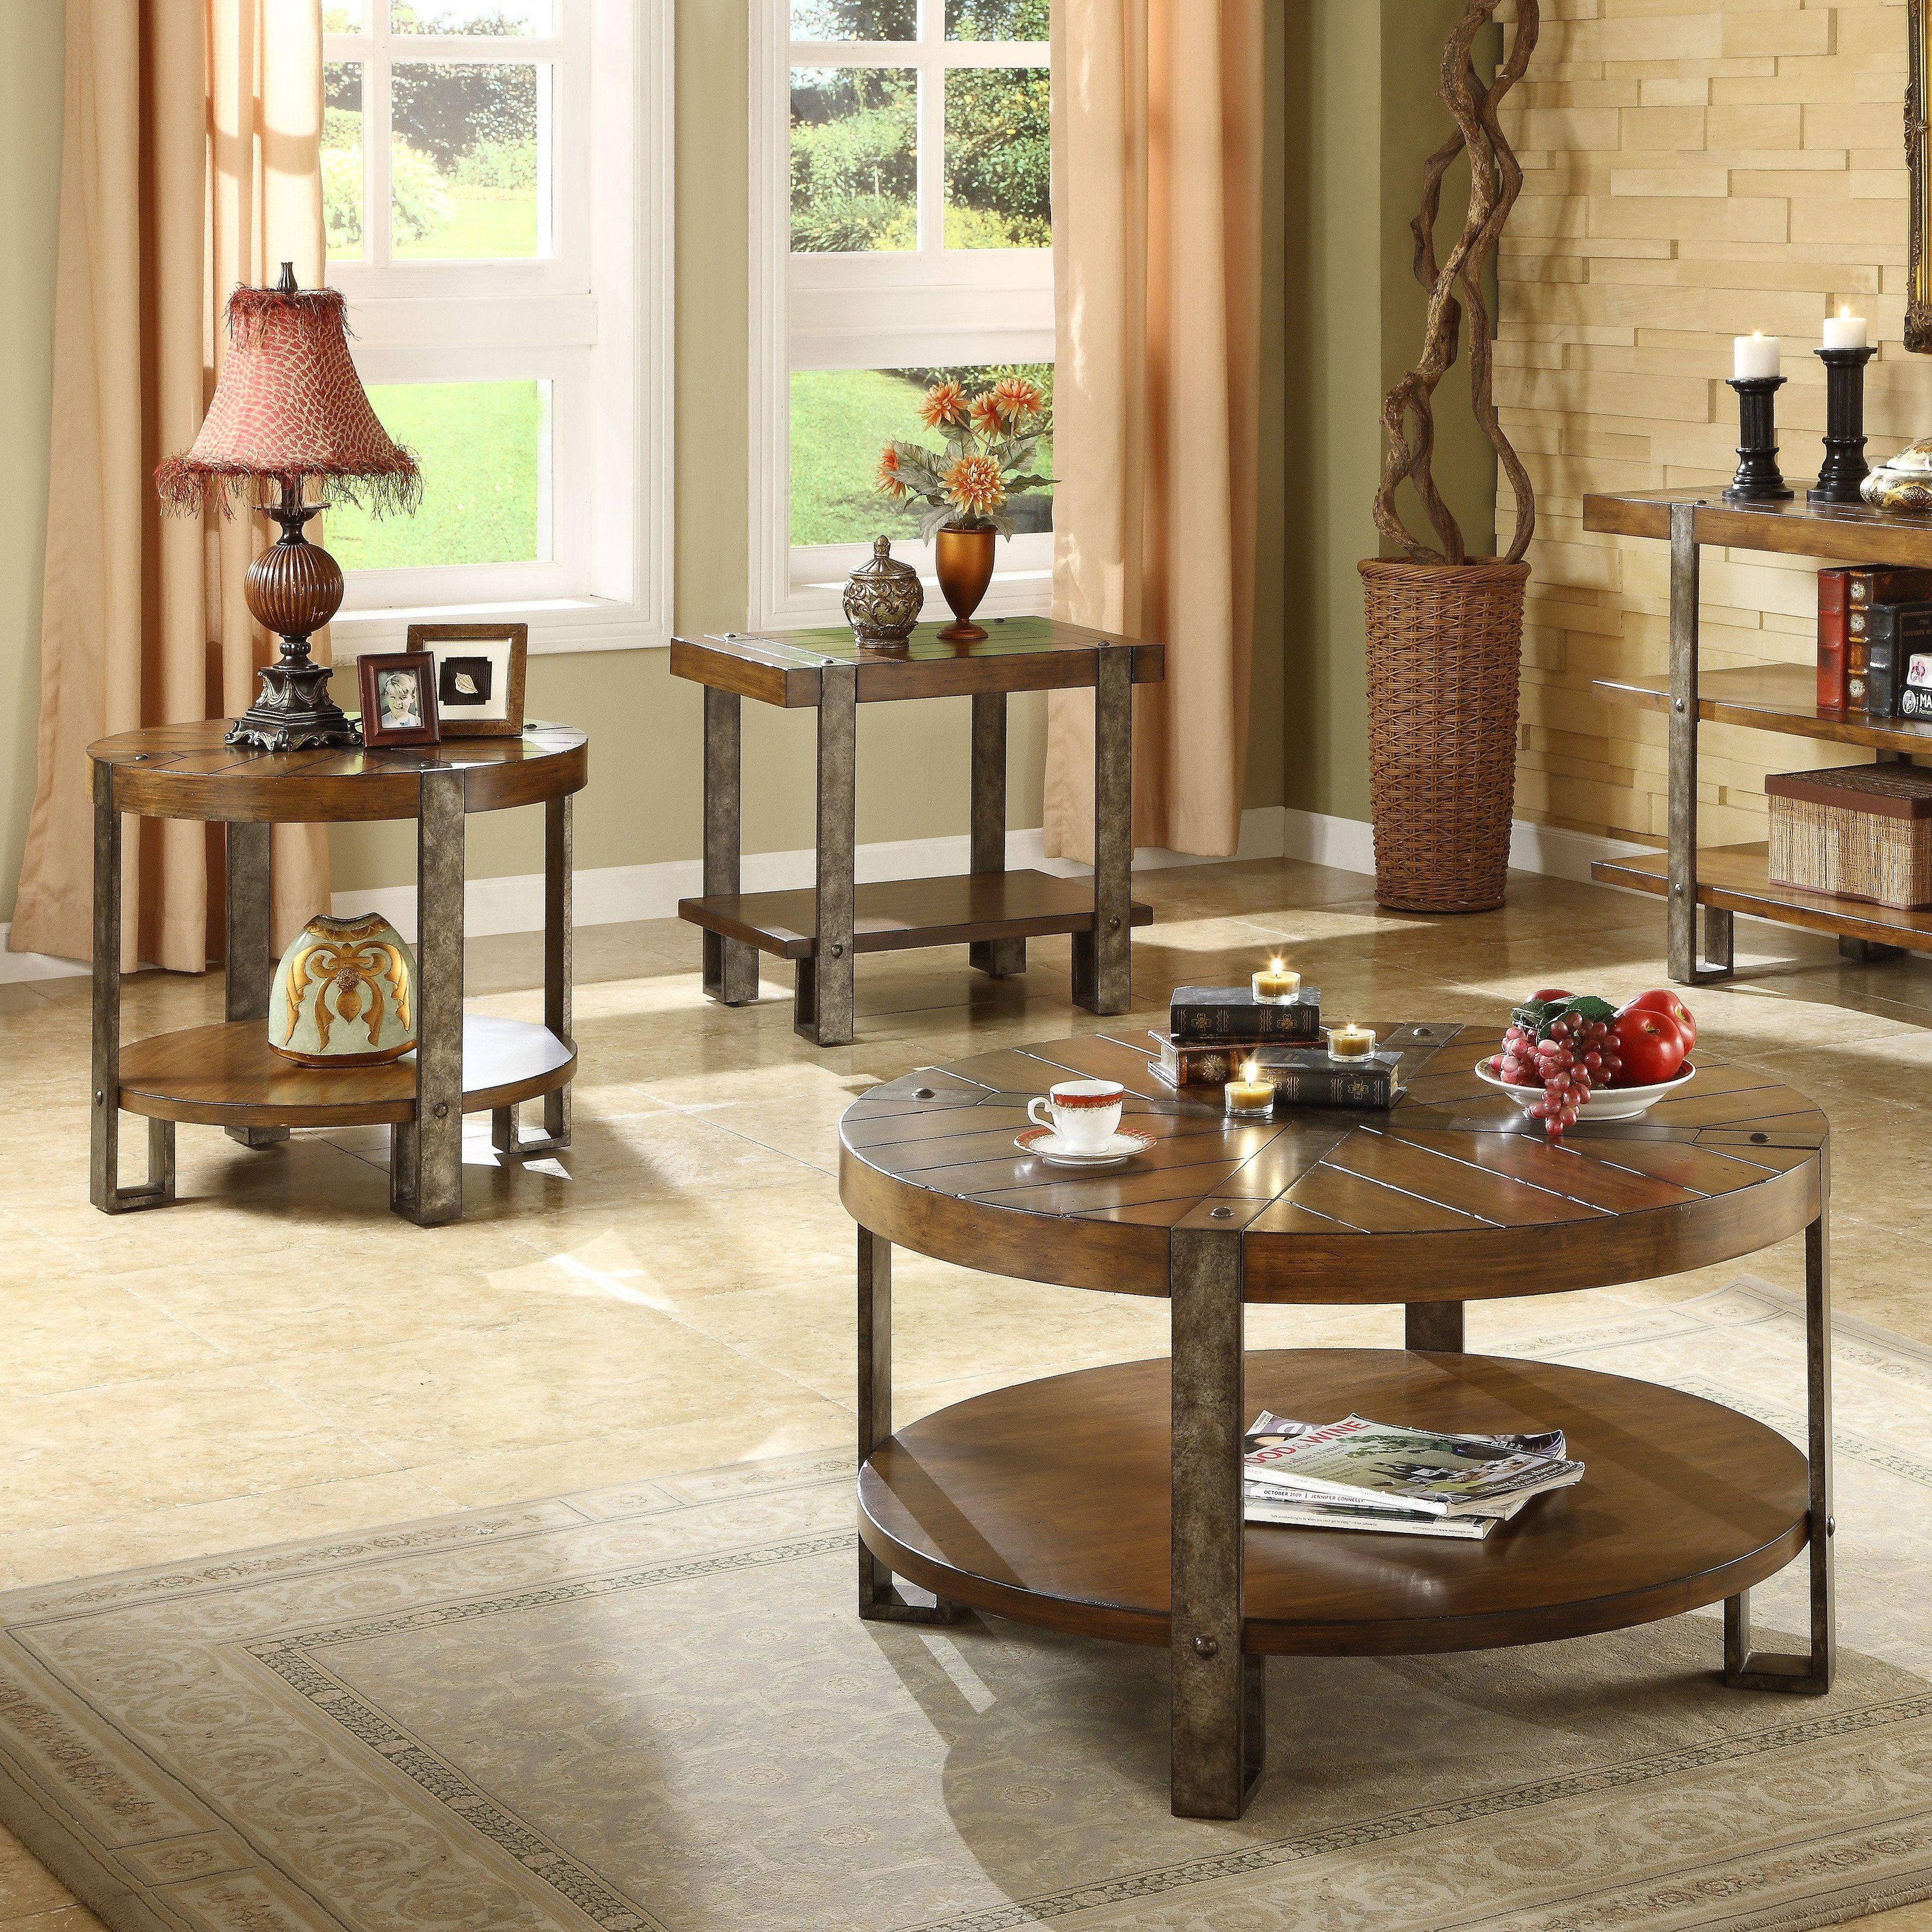 Have To Have It Riverside Sierra Round 3 Piece Coffee Table Set 956 25 Coffee Table Living Room Coffee Table 3 Piece Coffee Table Set [ 3200 x 3200 Pixel ]